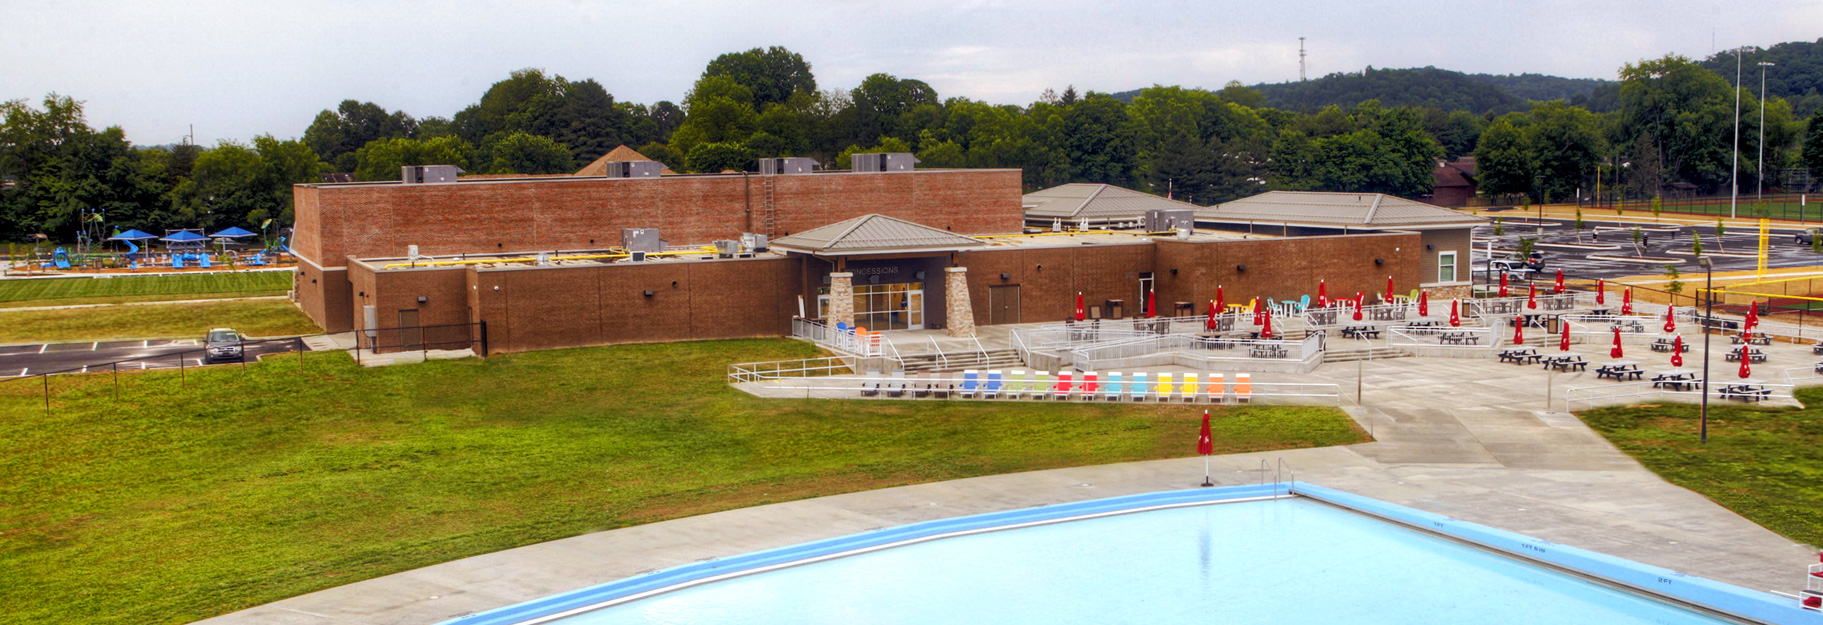 Valley Park Community Center